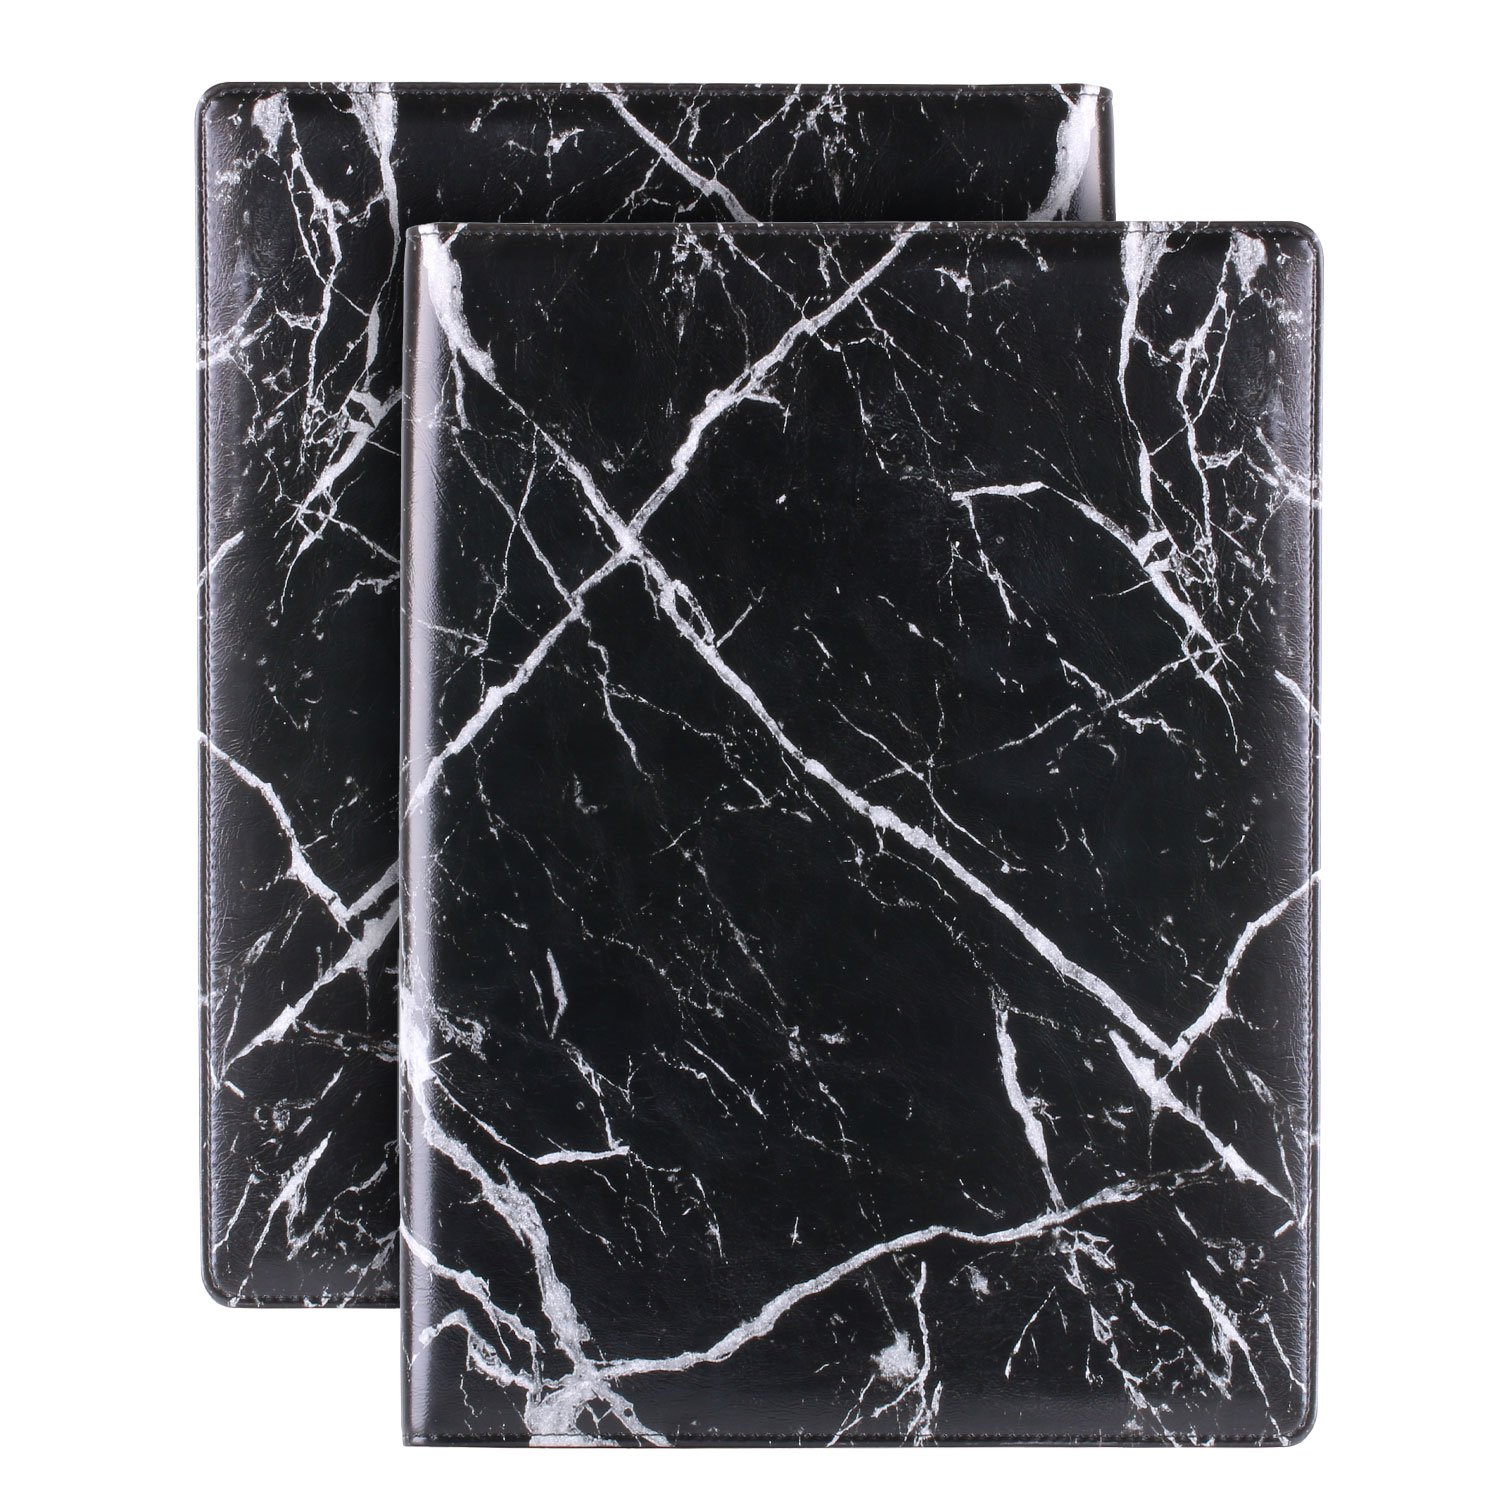 Plinrise Luxury Marble Portfolio File Folder Document Resume Organizer,Padfolio File Holder Folders Letter Size,Clipboard Folder with Writing Pad,Black Marbling